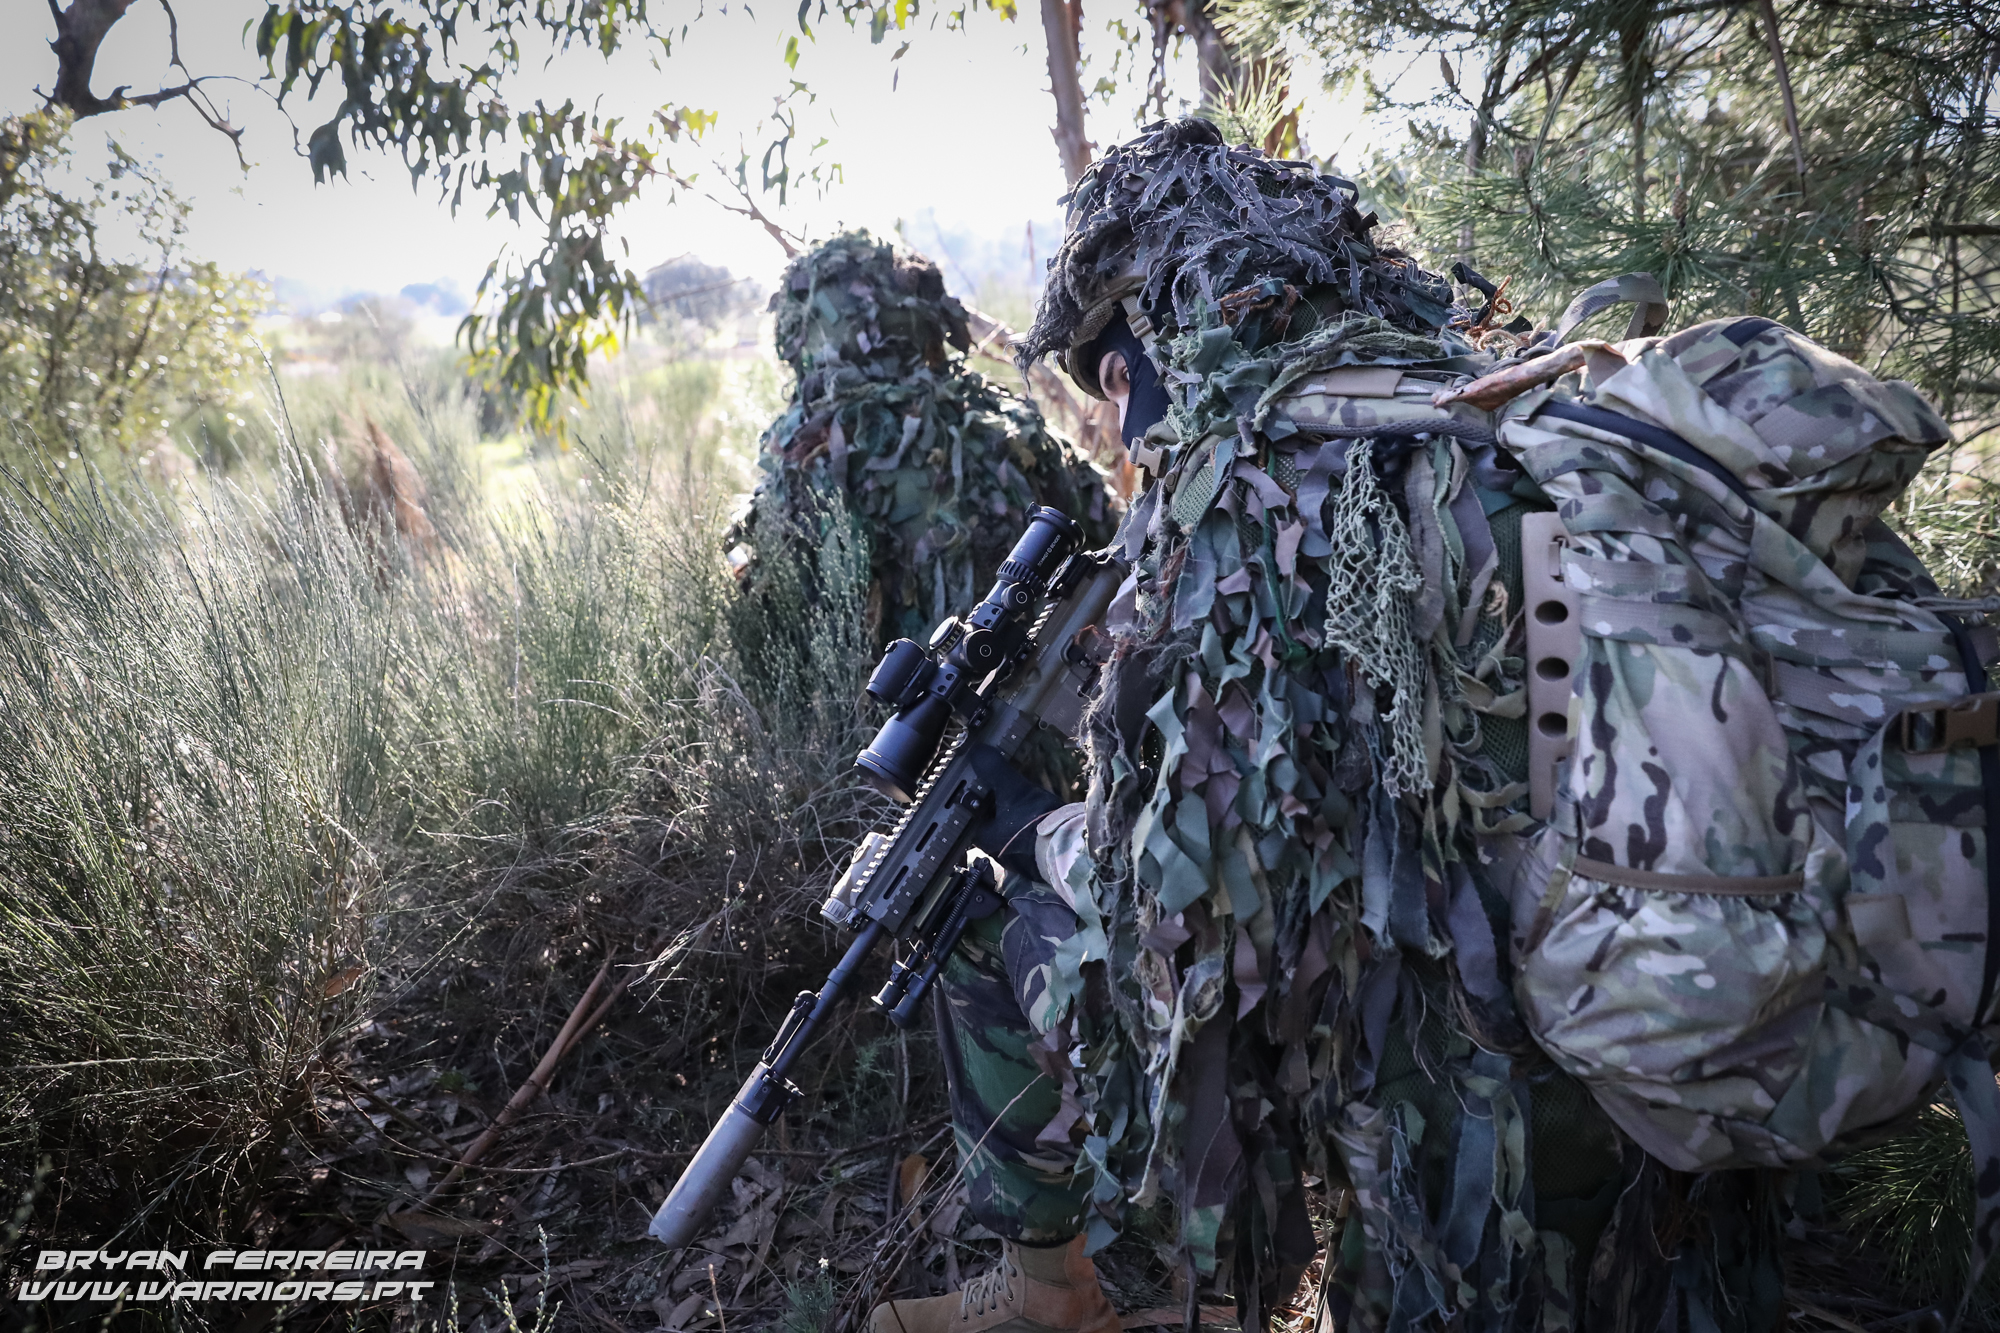 Portuguese Special Operations Forces Snipers